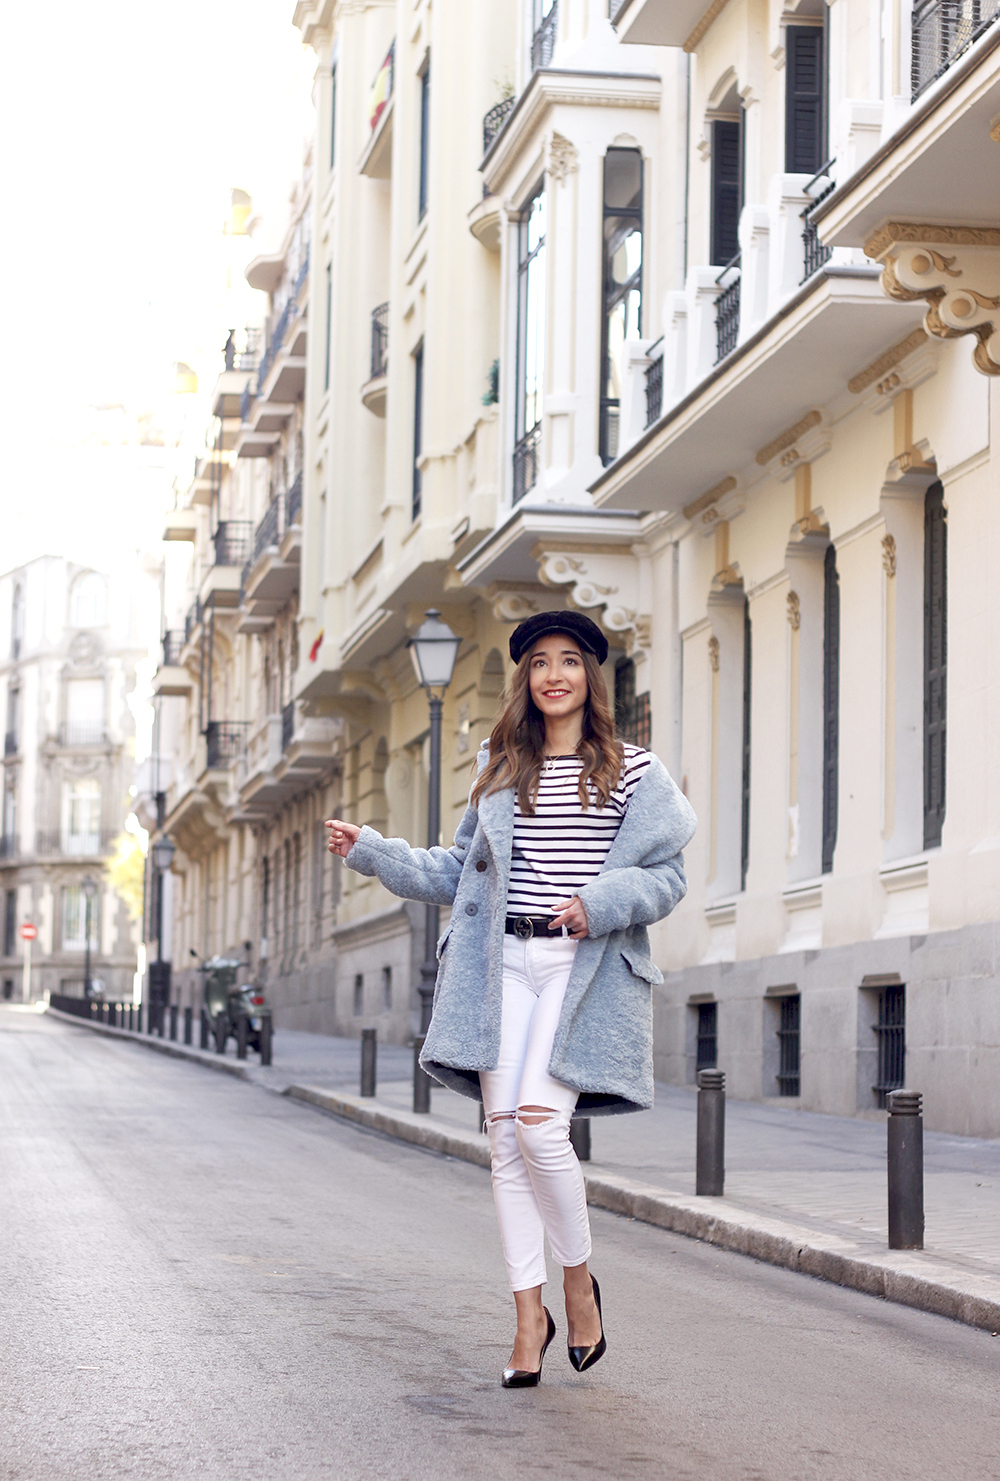 blue fur coat stripes white ripped jeans givenchy bag navy cap fall outfit street style04